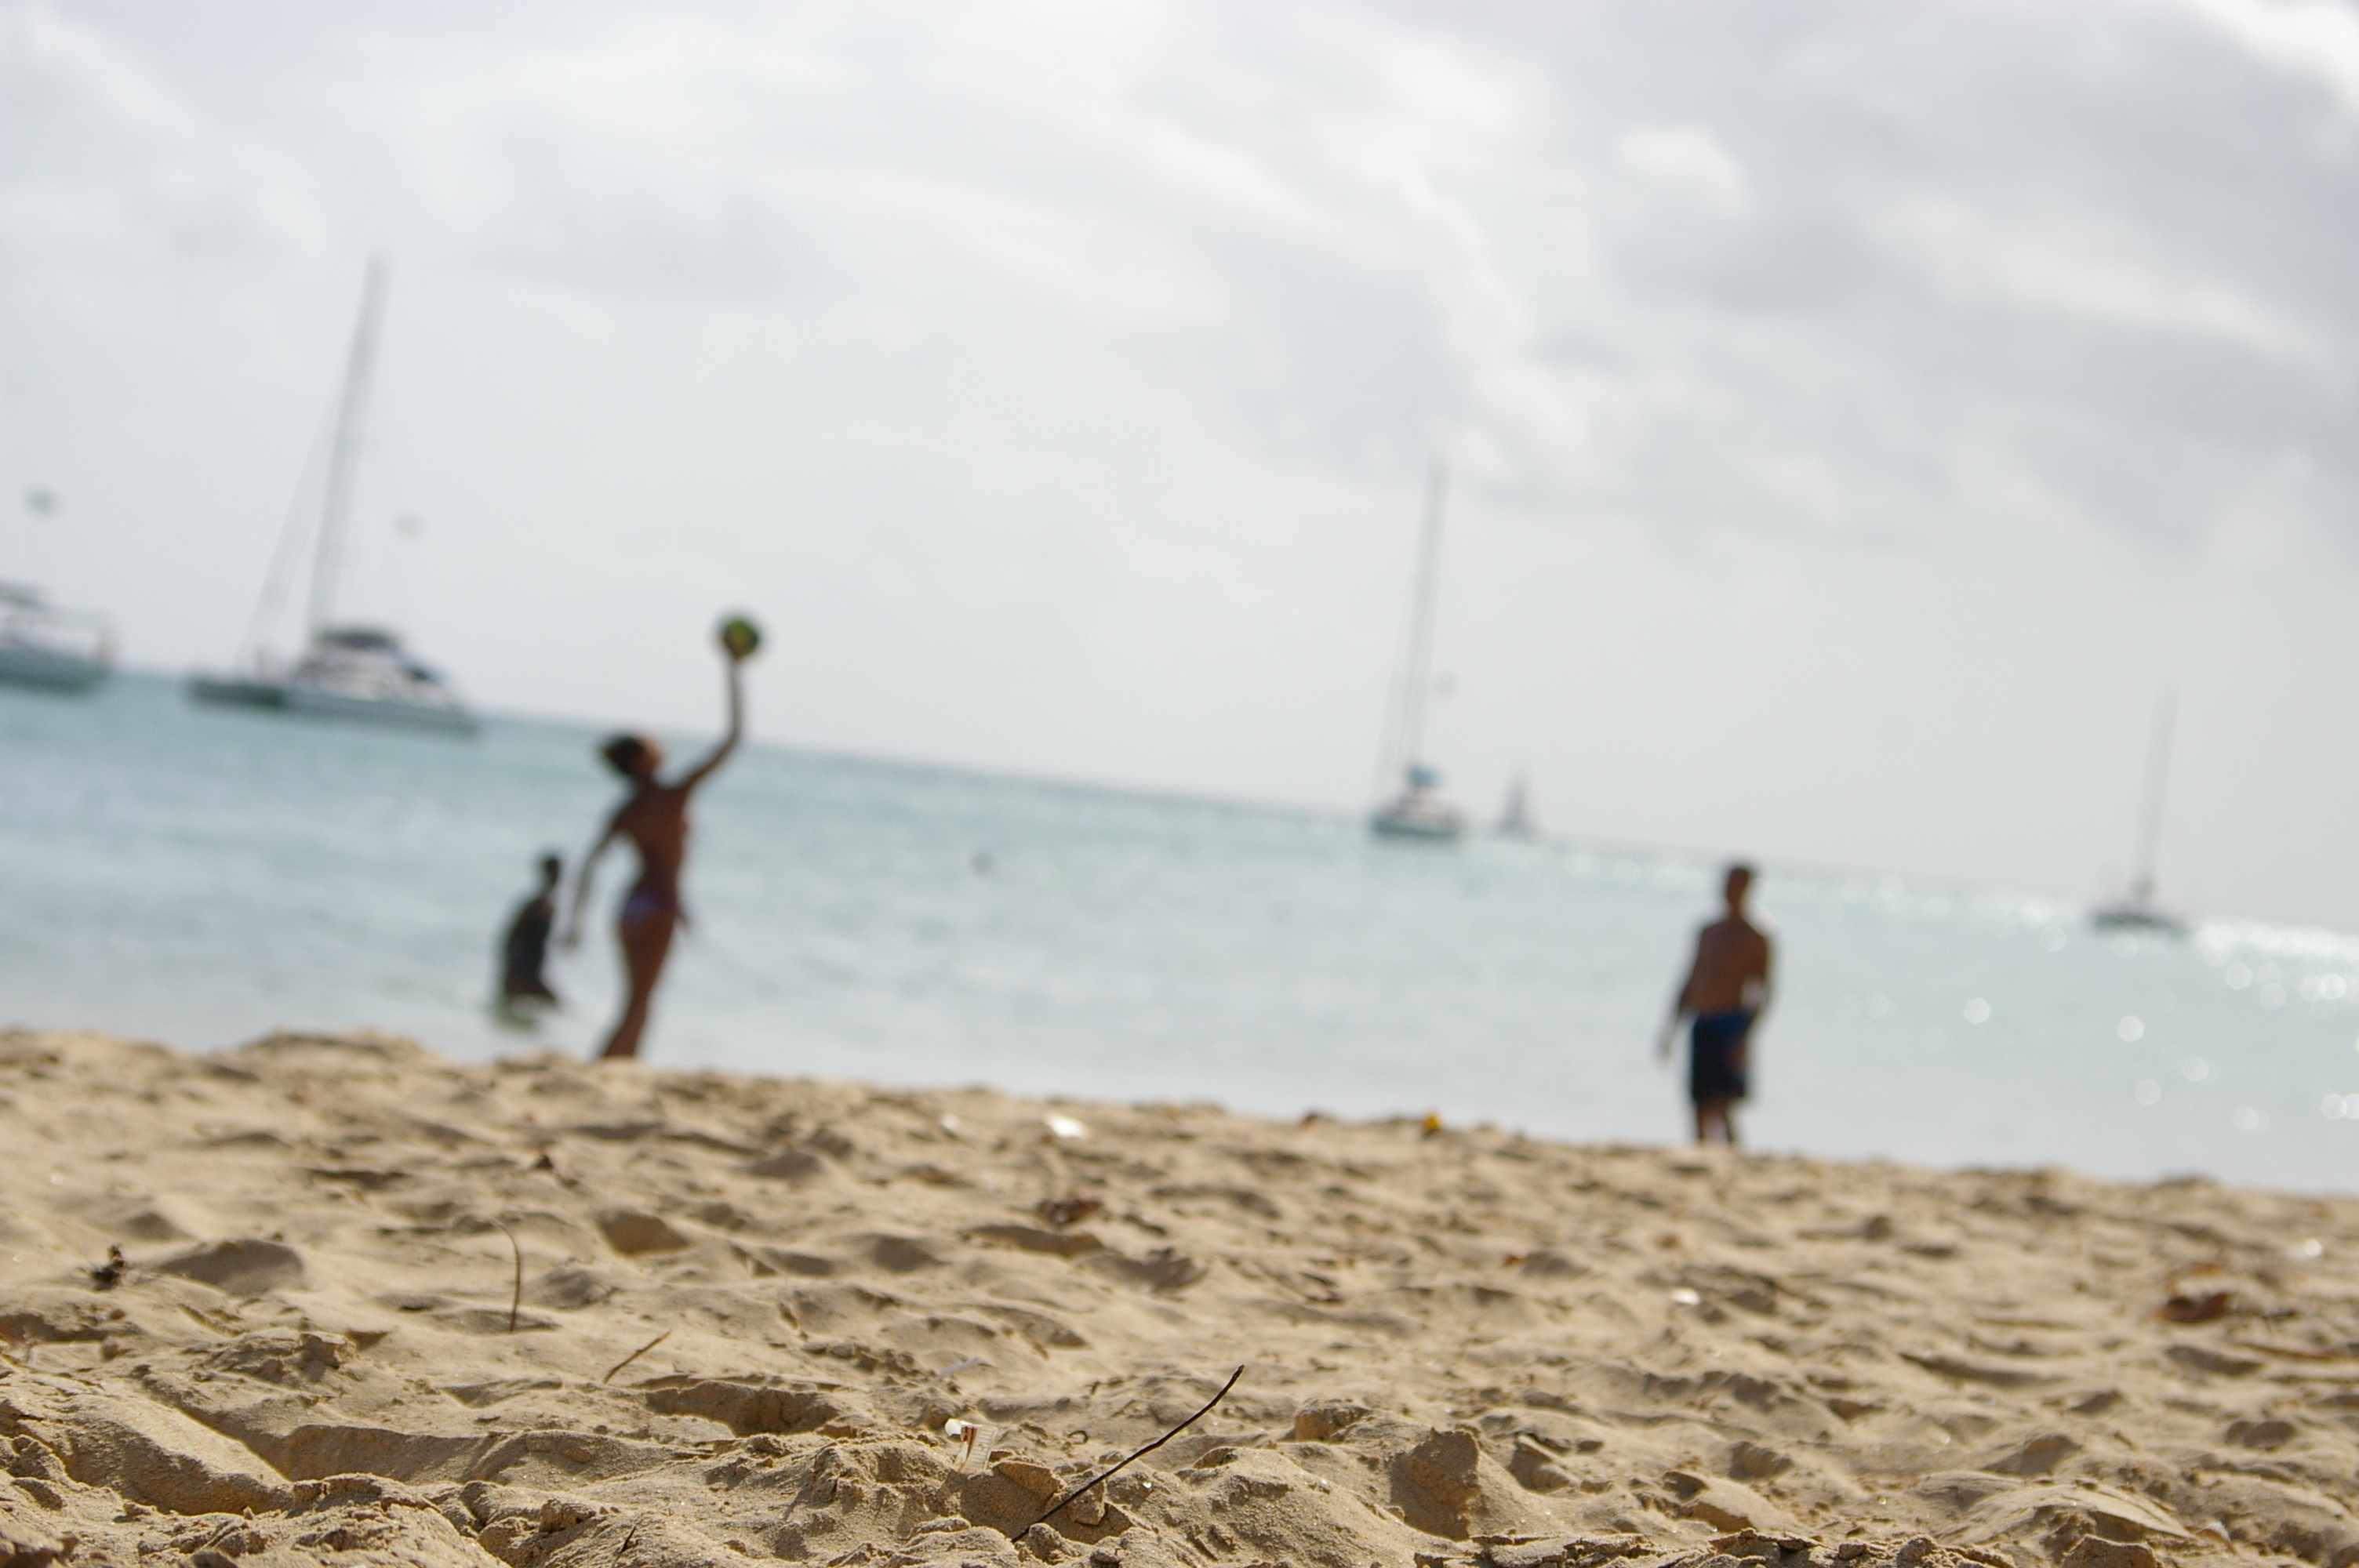 Volleyball at the beach, Ball, Sand, Volley, Vacation, HQ Photo